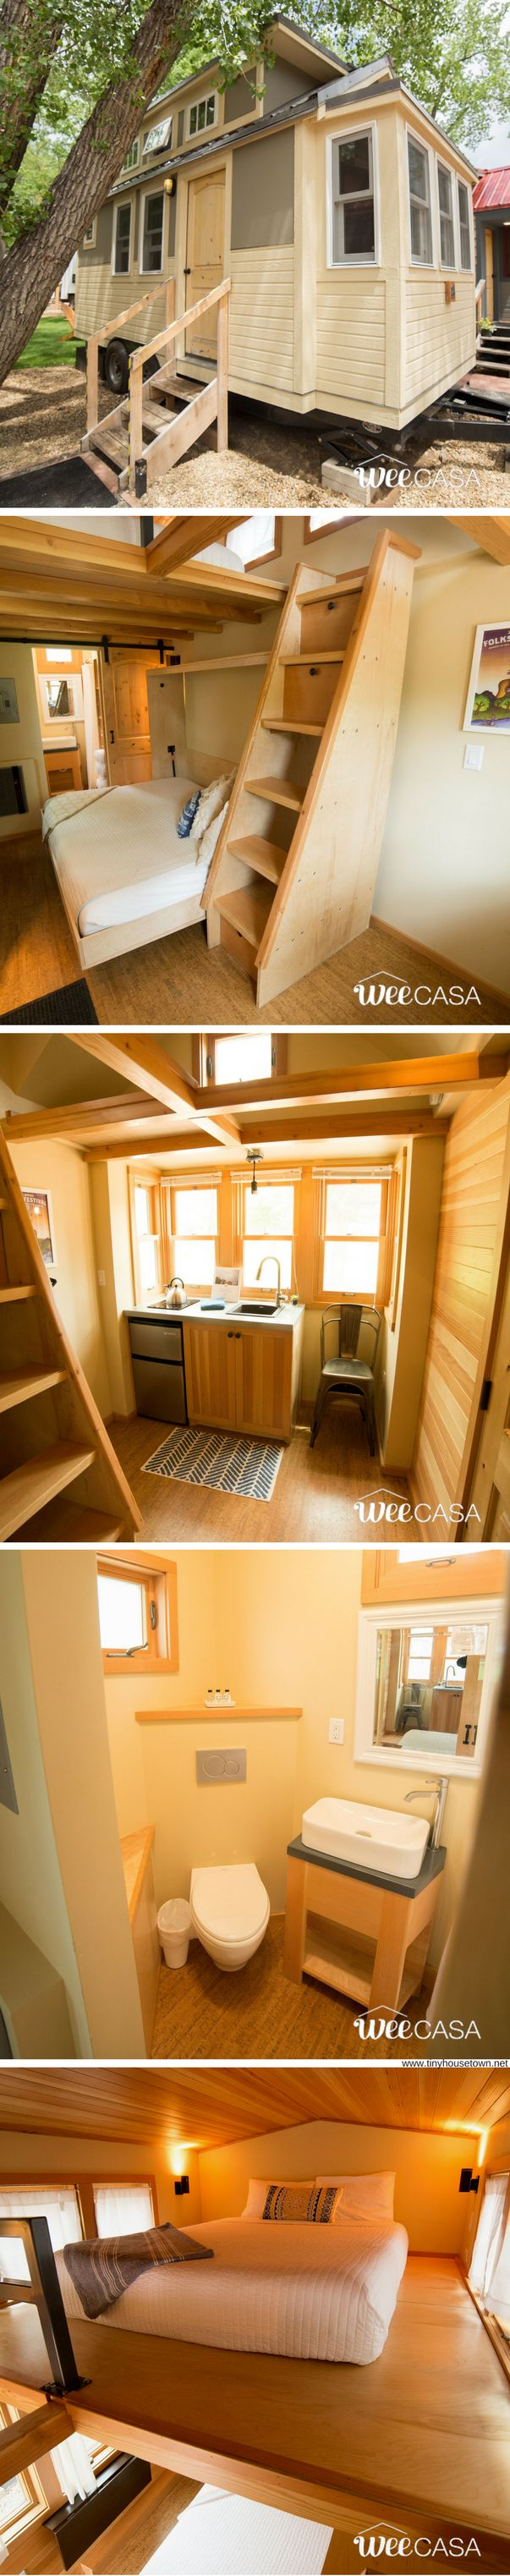 The Roaring Fork Aspen Tiny House (170 Sq Ft) yes! Love this one. Very clean.